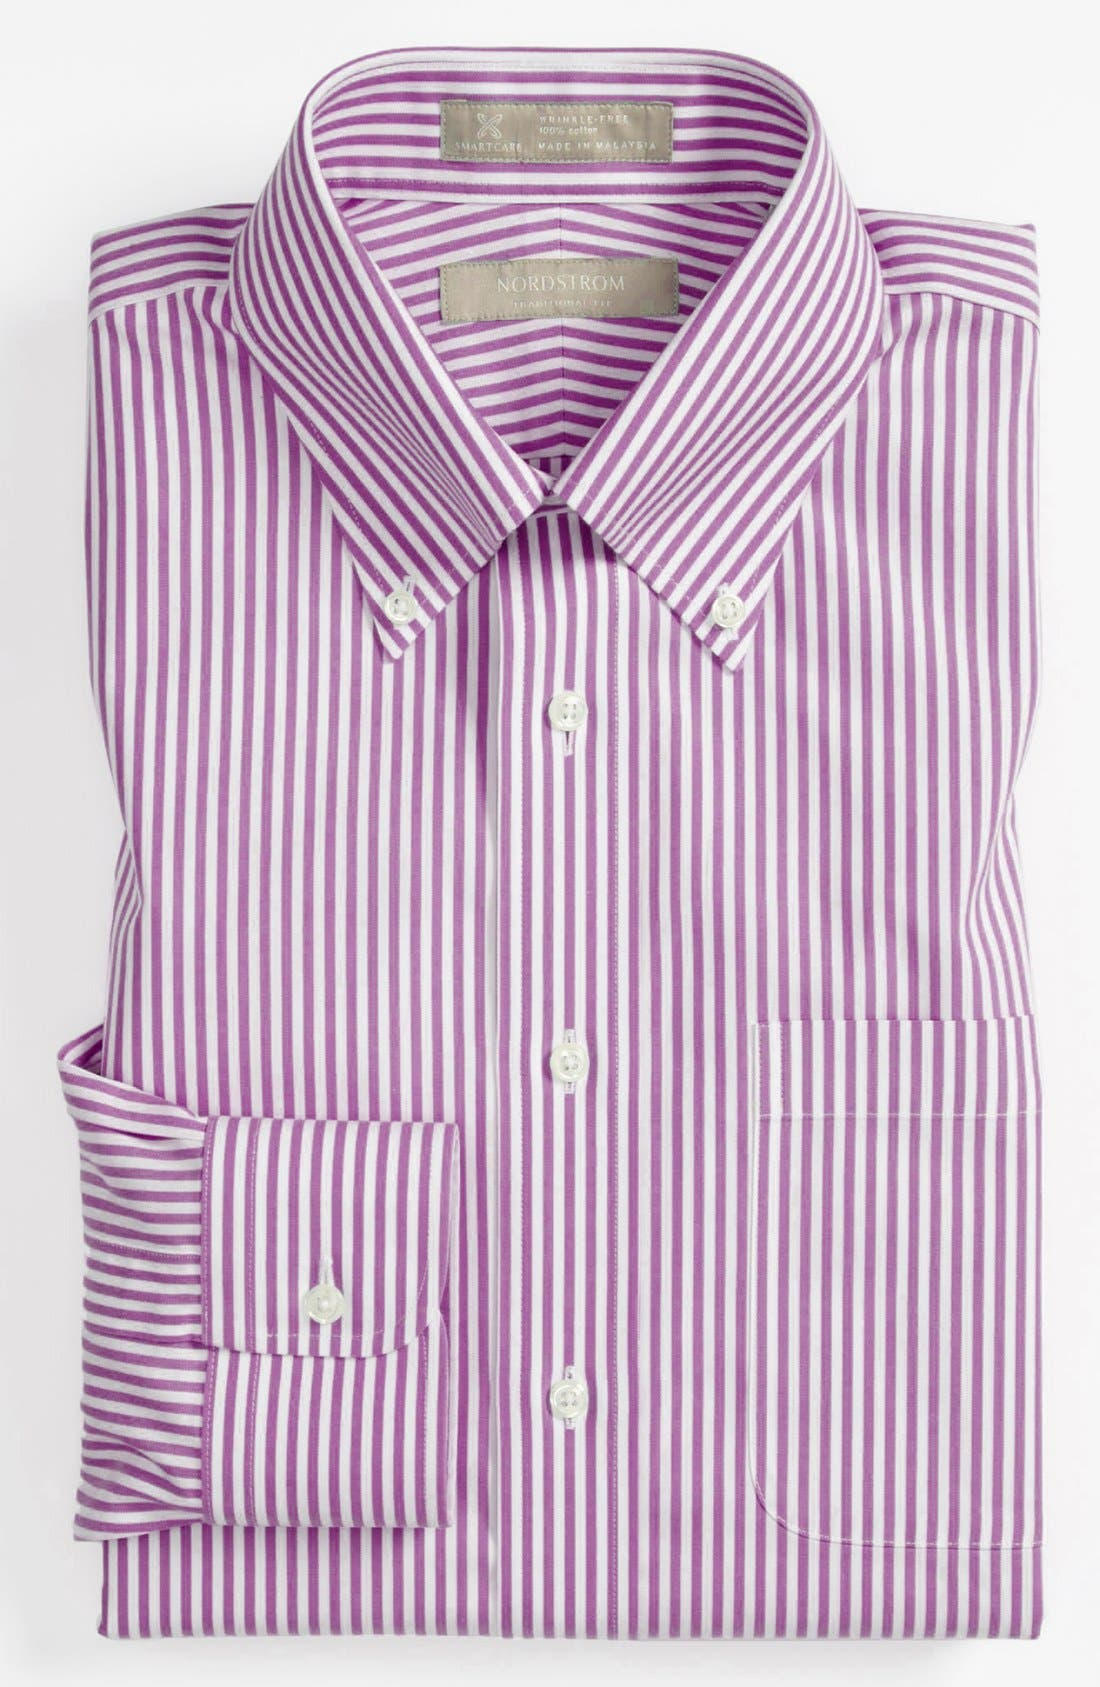 Alternate Image 1 Selected - Nordstrom Men's Shop Smartcare™ Traditional Fit Stripe Dress Shirt